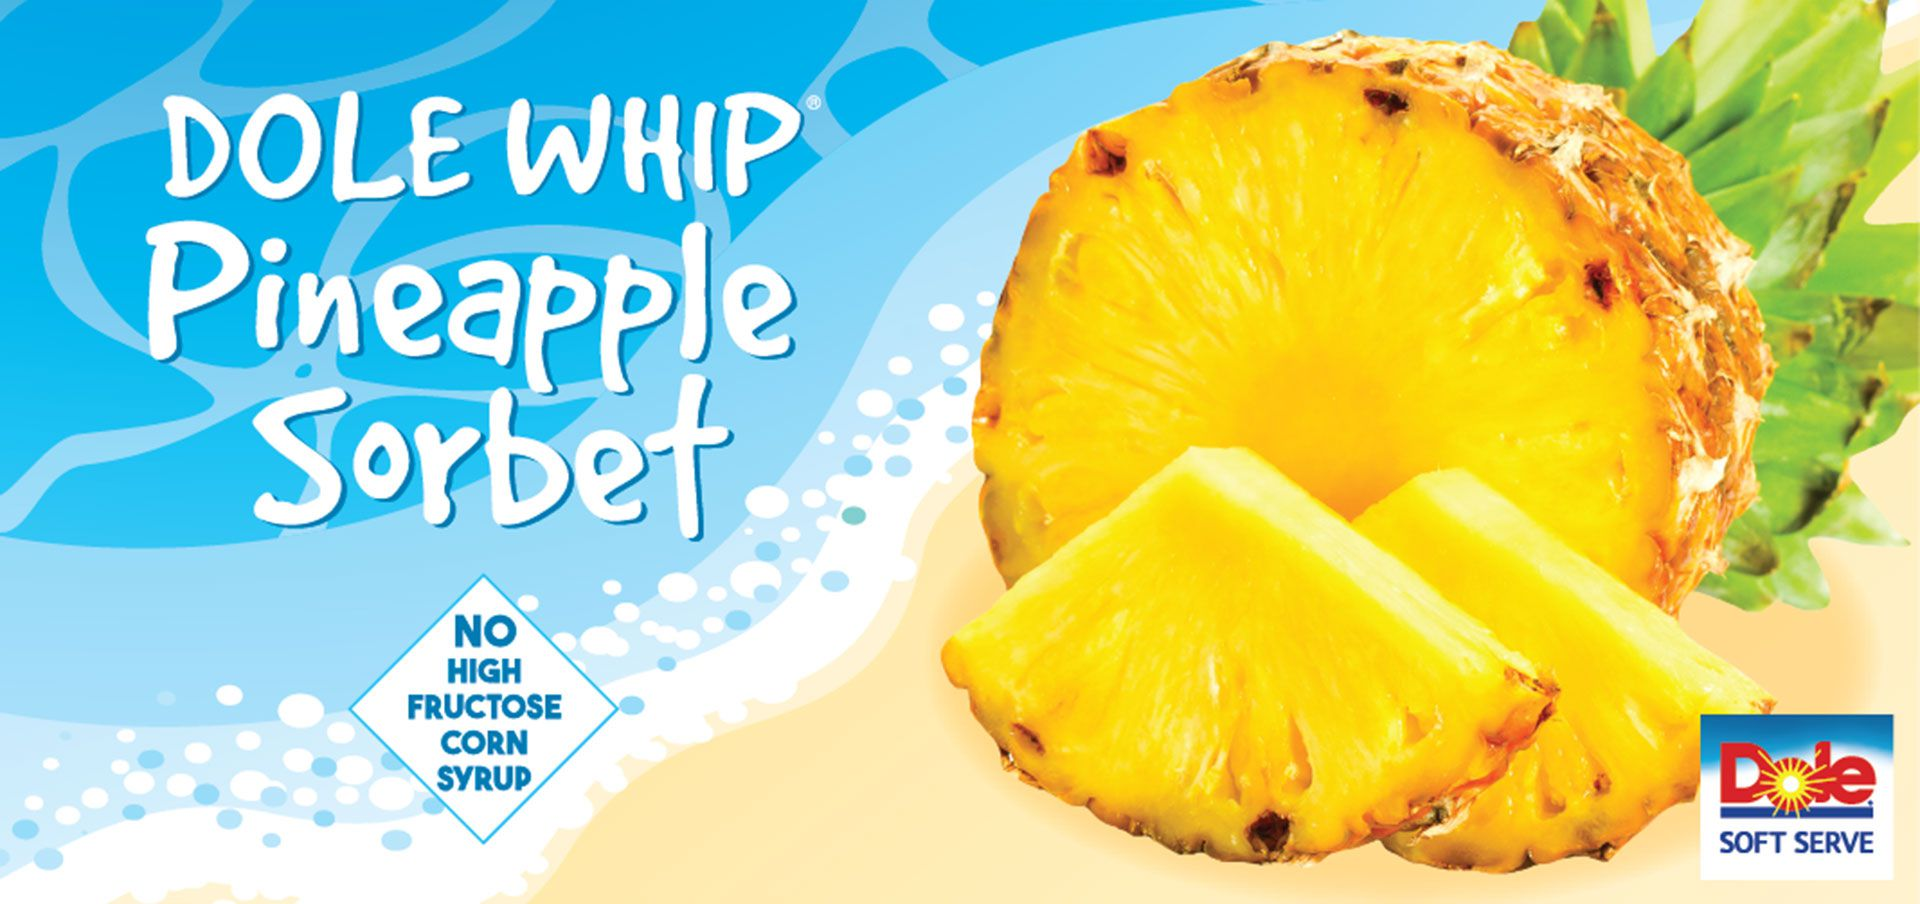 dole® whip pineapple sorbet label image